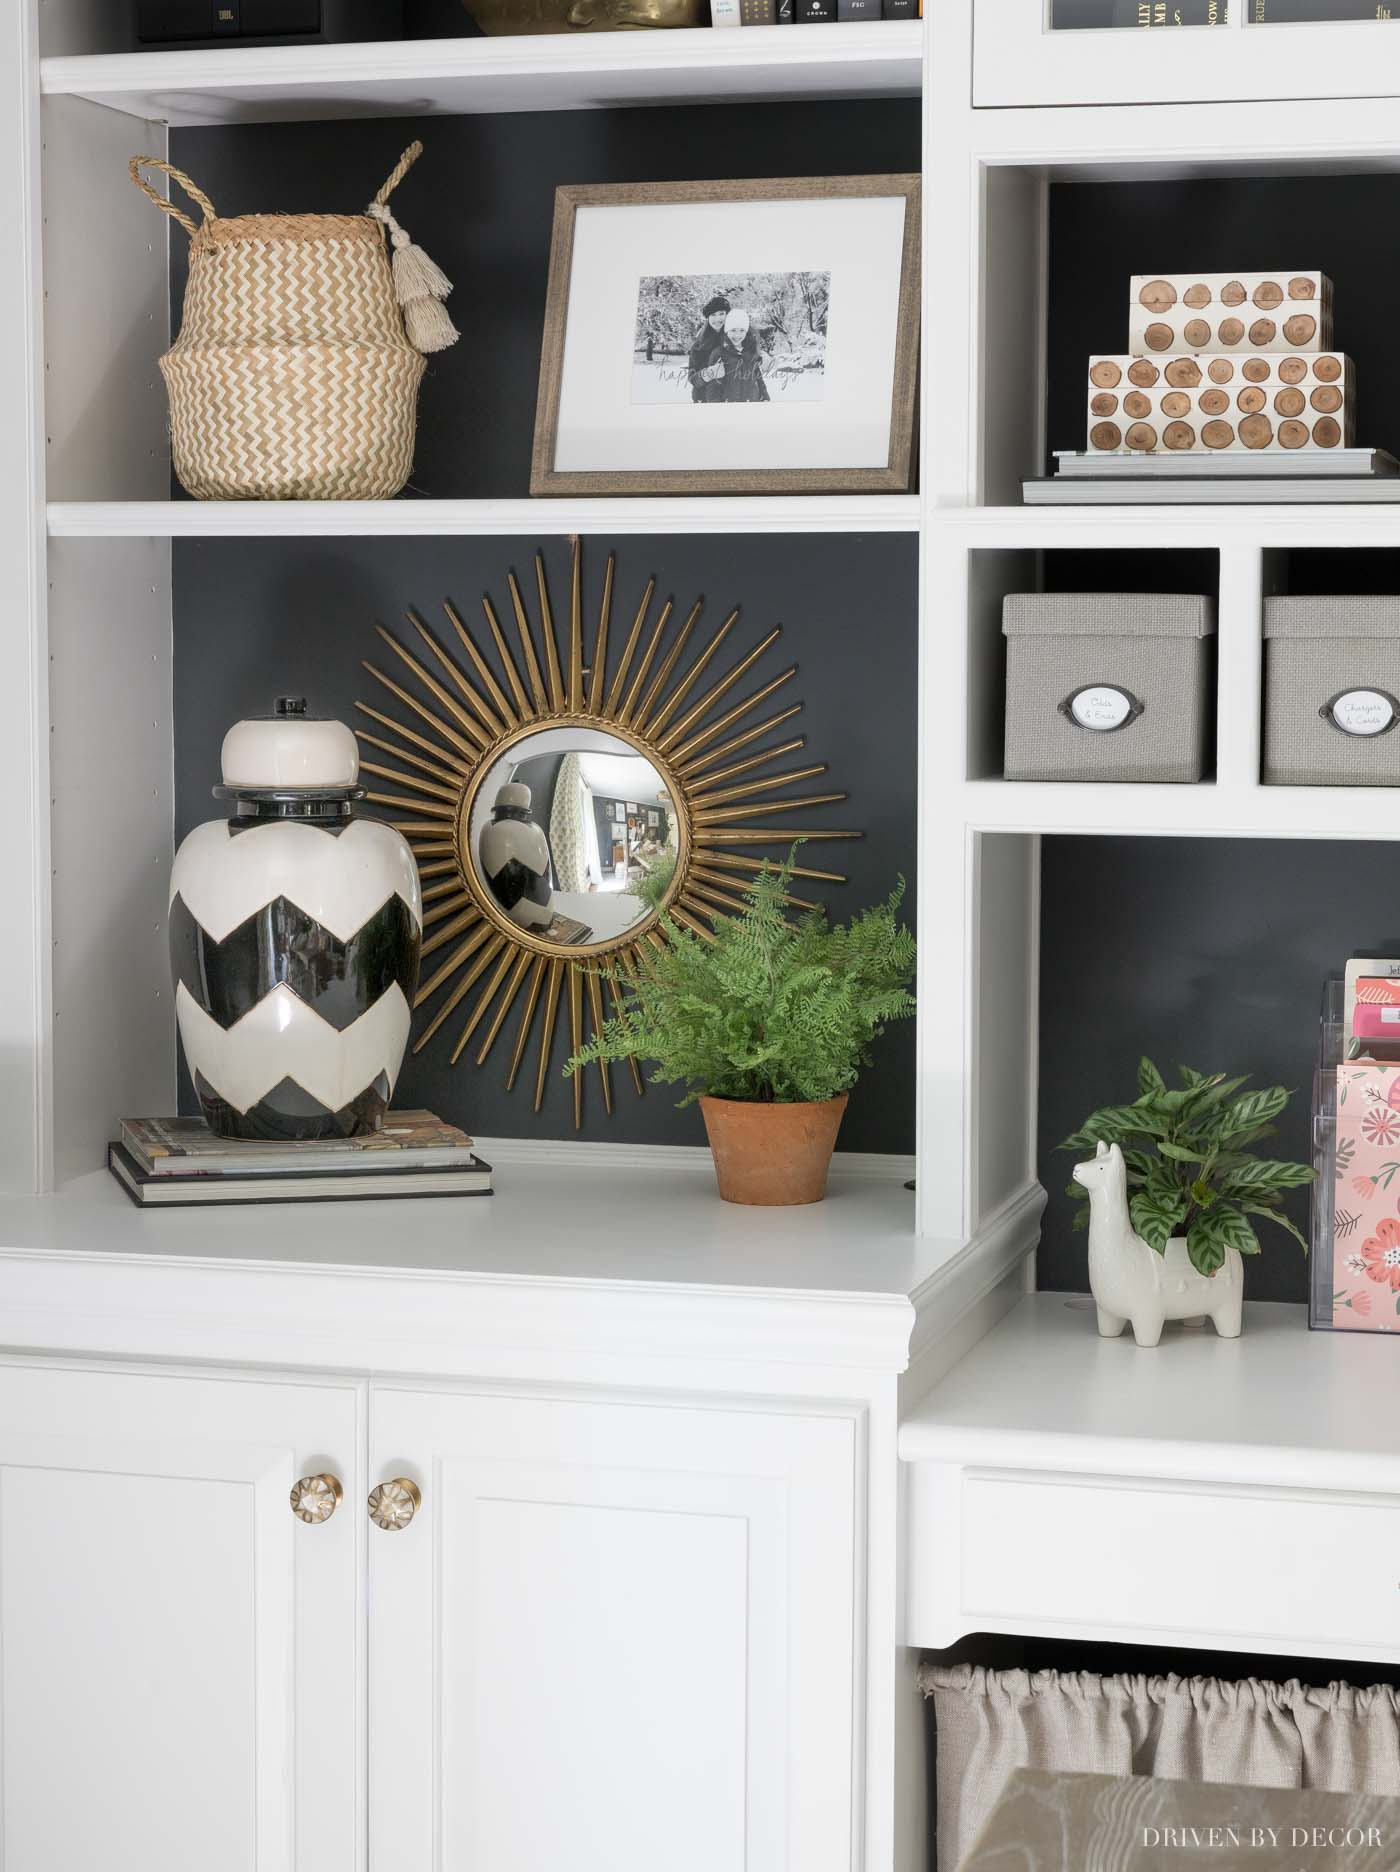 Love the starburst mirror she has on the back of her bookcase!